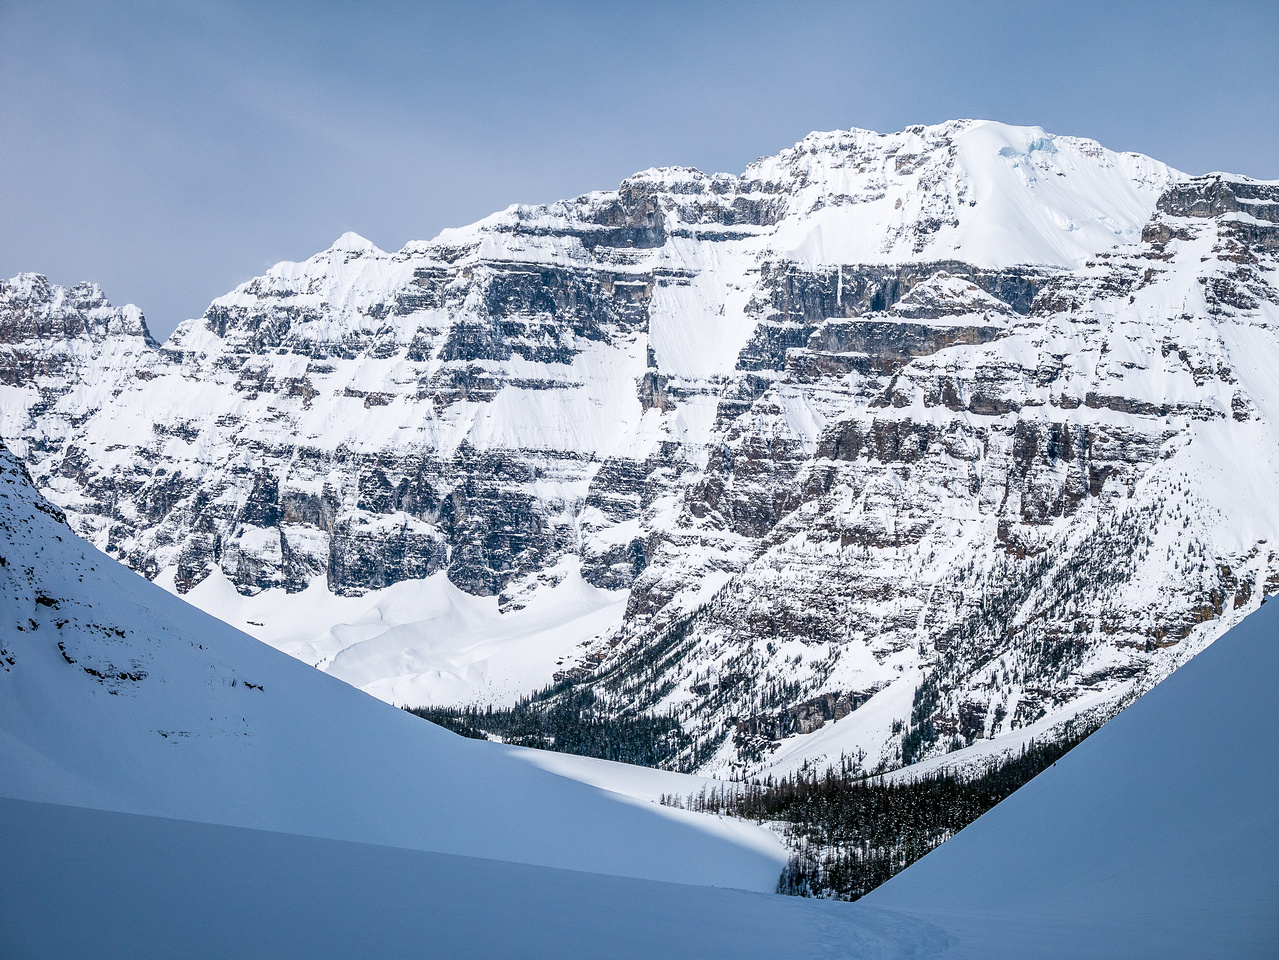 Looking back at Mount Lefroy as it sheds snow down it's steep east face.